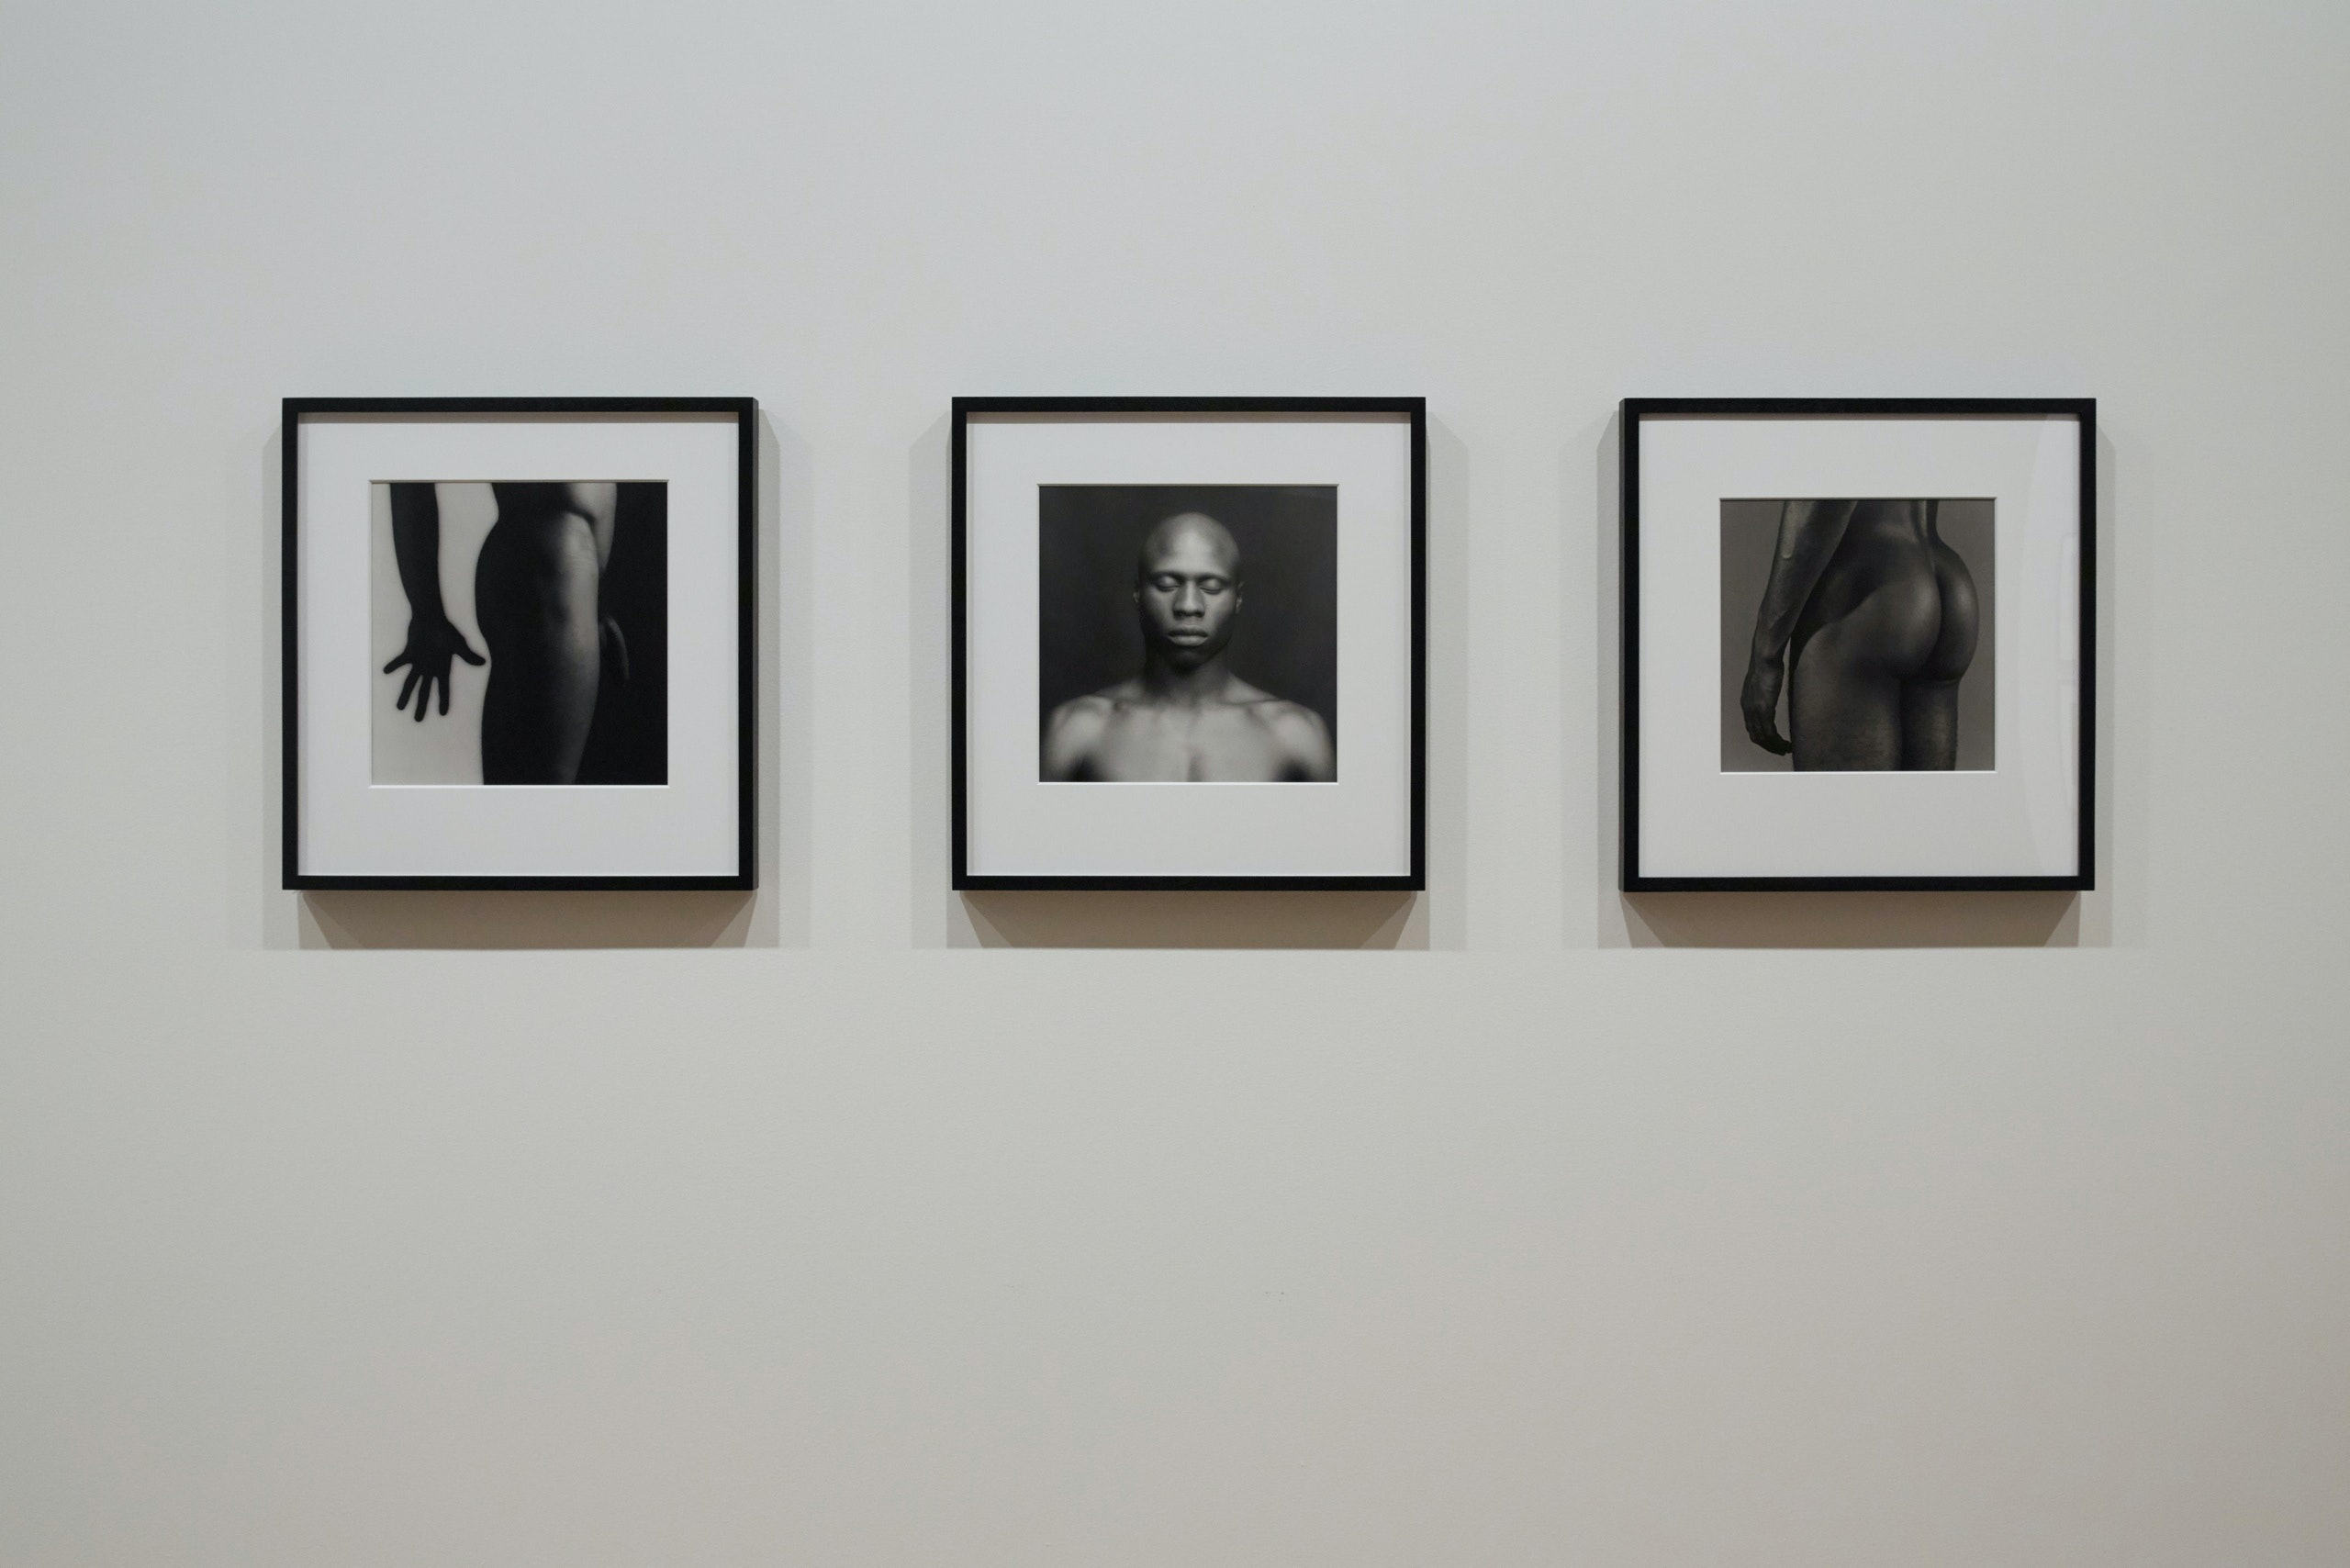 essays about robert mapplethorpe American photographer robert mapplethorpe is known for his black and white photos that perfectly capture shadows and relationships that highlight the.